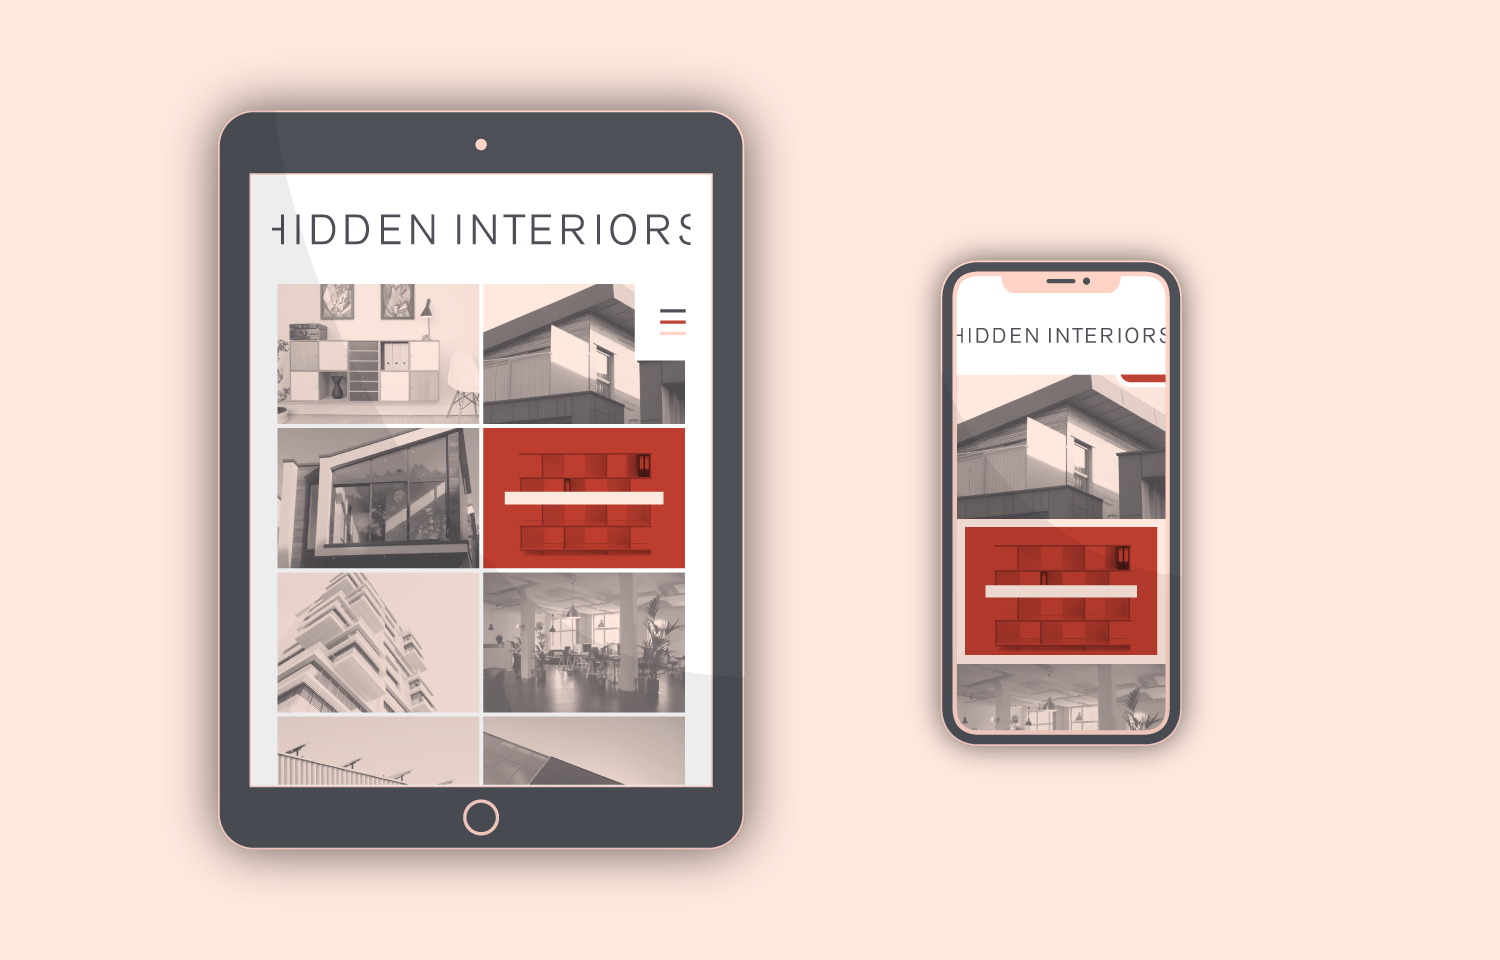 Mobile design (tablet & mobile view) for Hidden Interiors website.